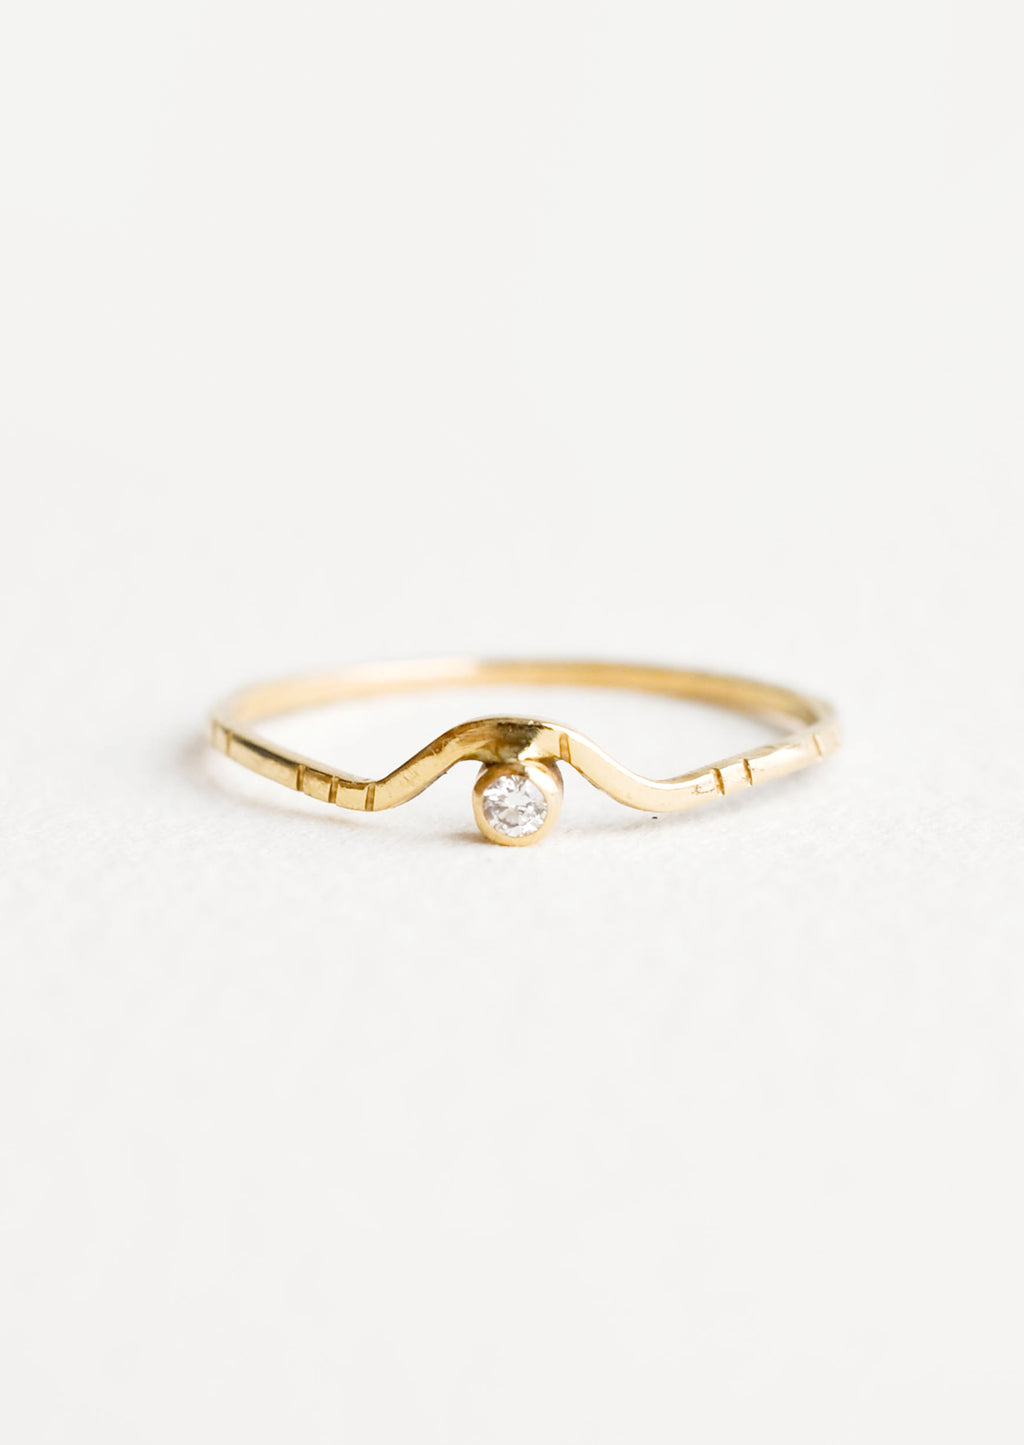 1: Yellow gold ring with etched decorative lines and a diamond set into an arched front.